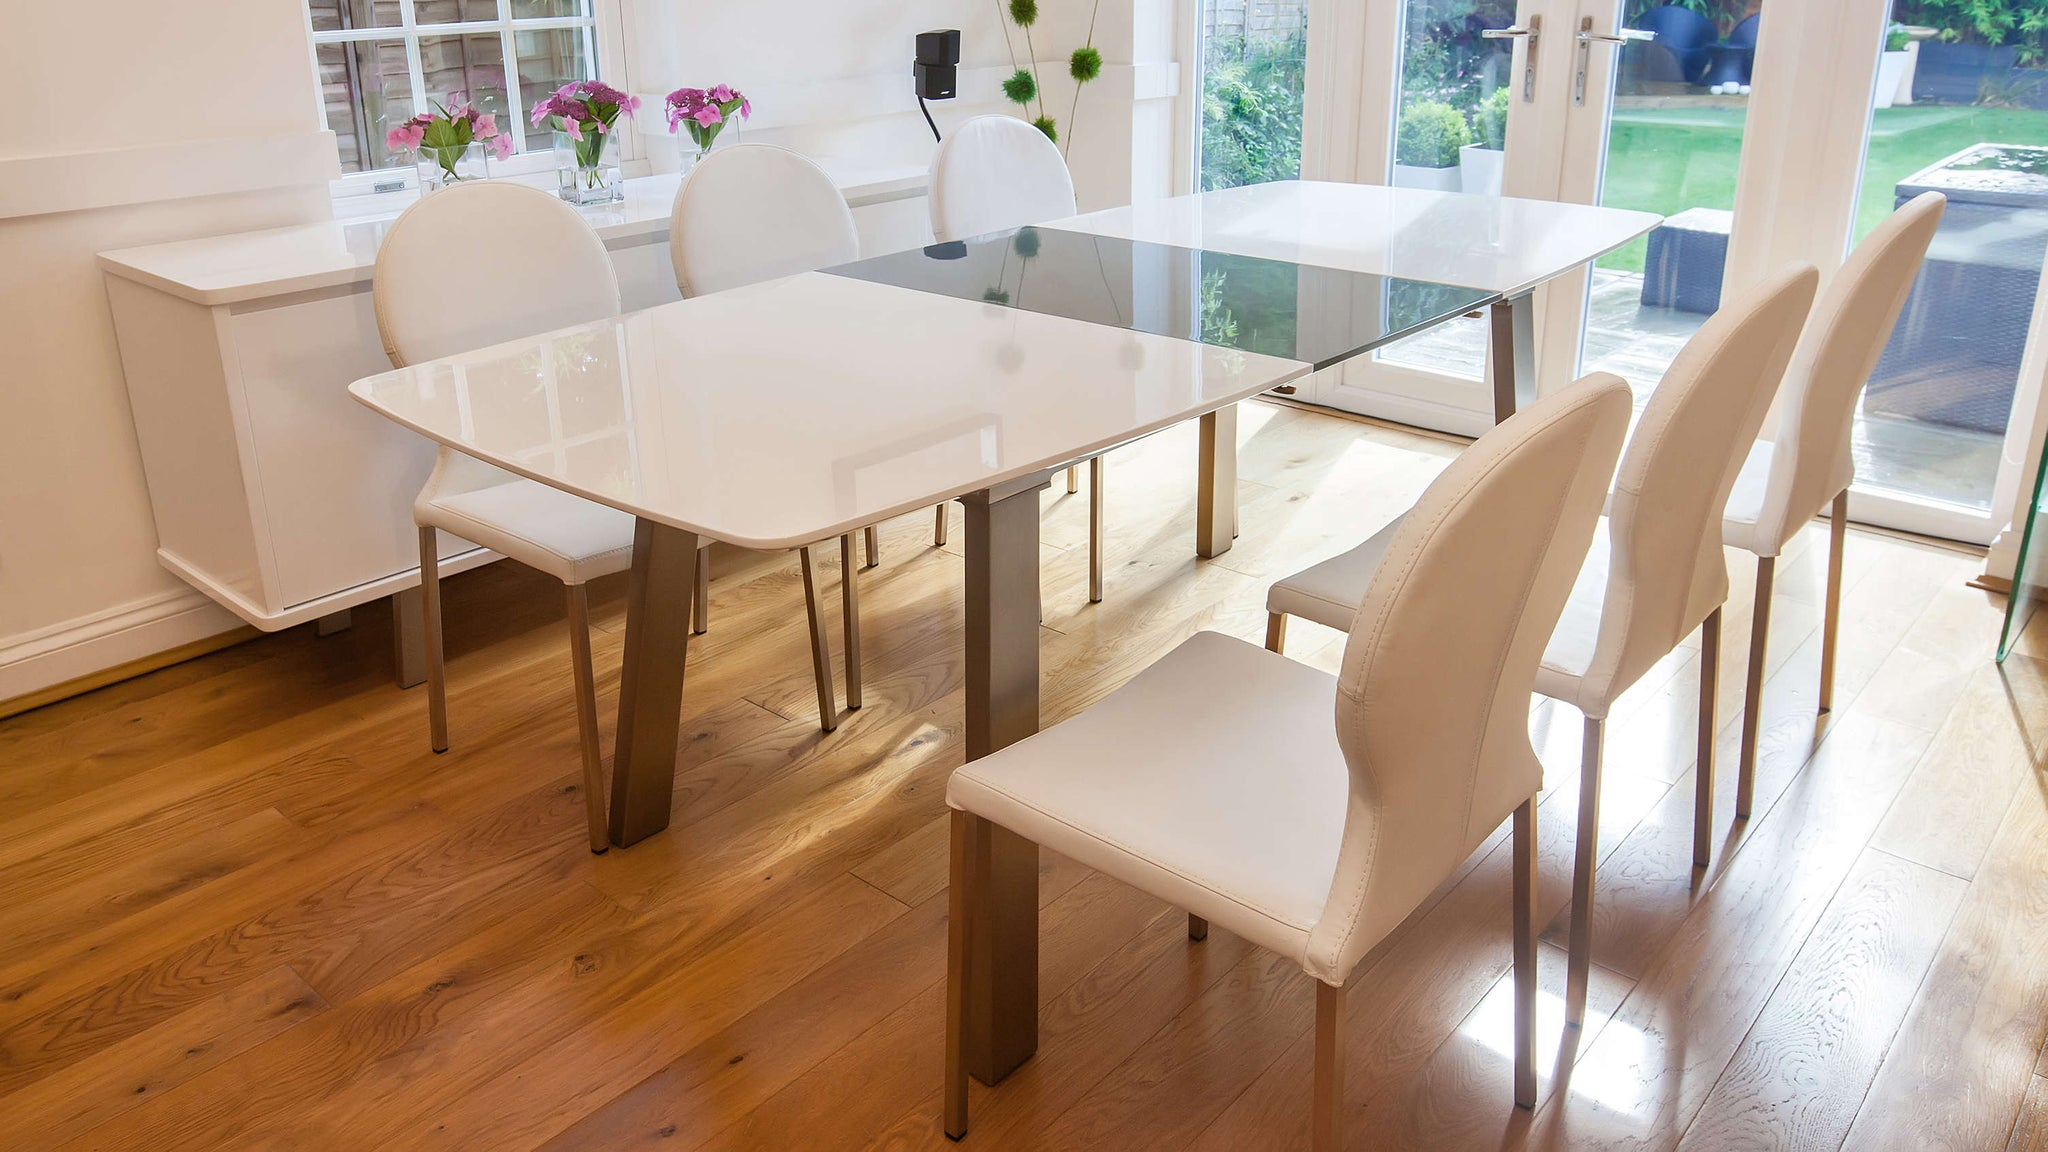 6-8 Seater White Gloss Extending Table and White Dining Chairs